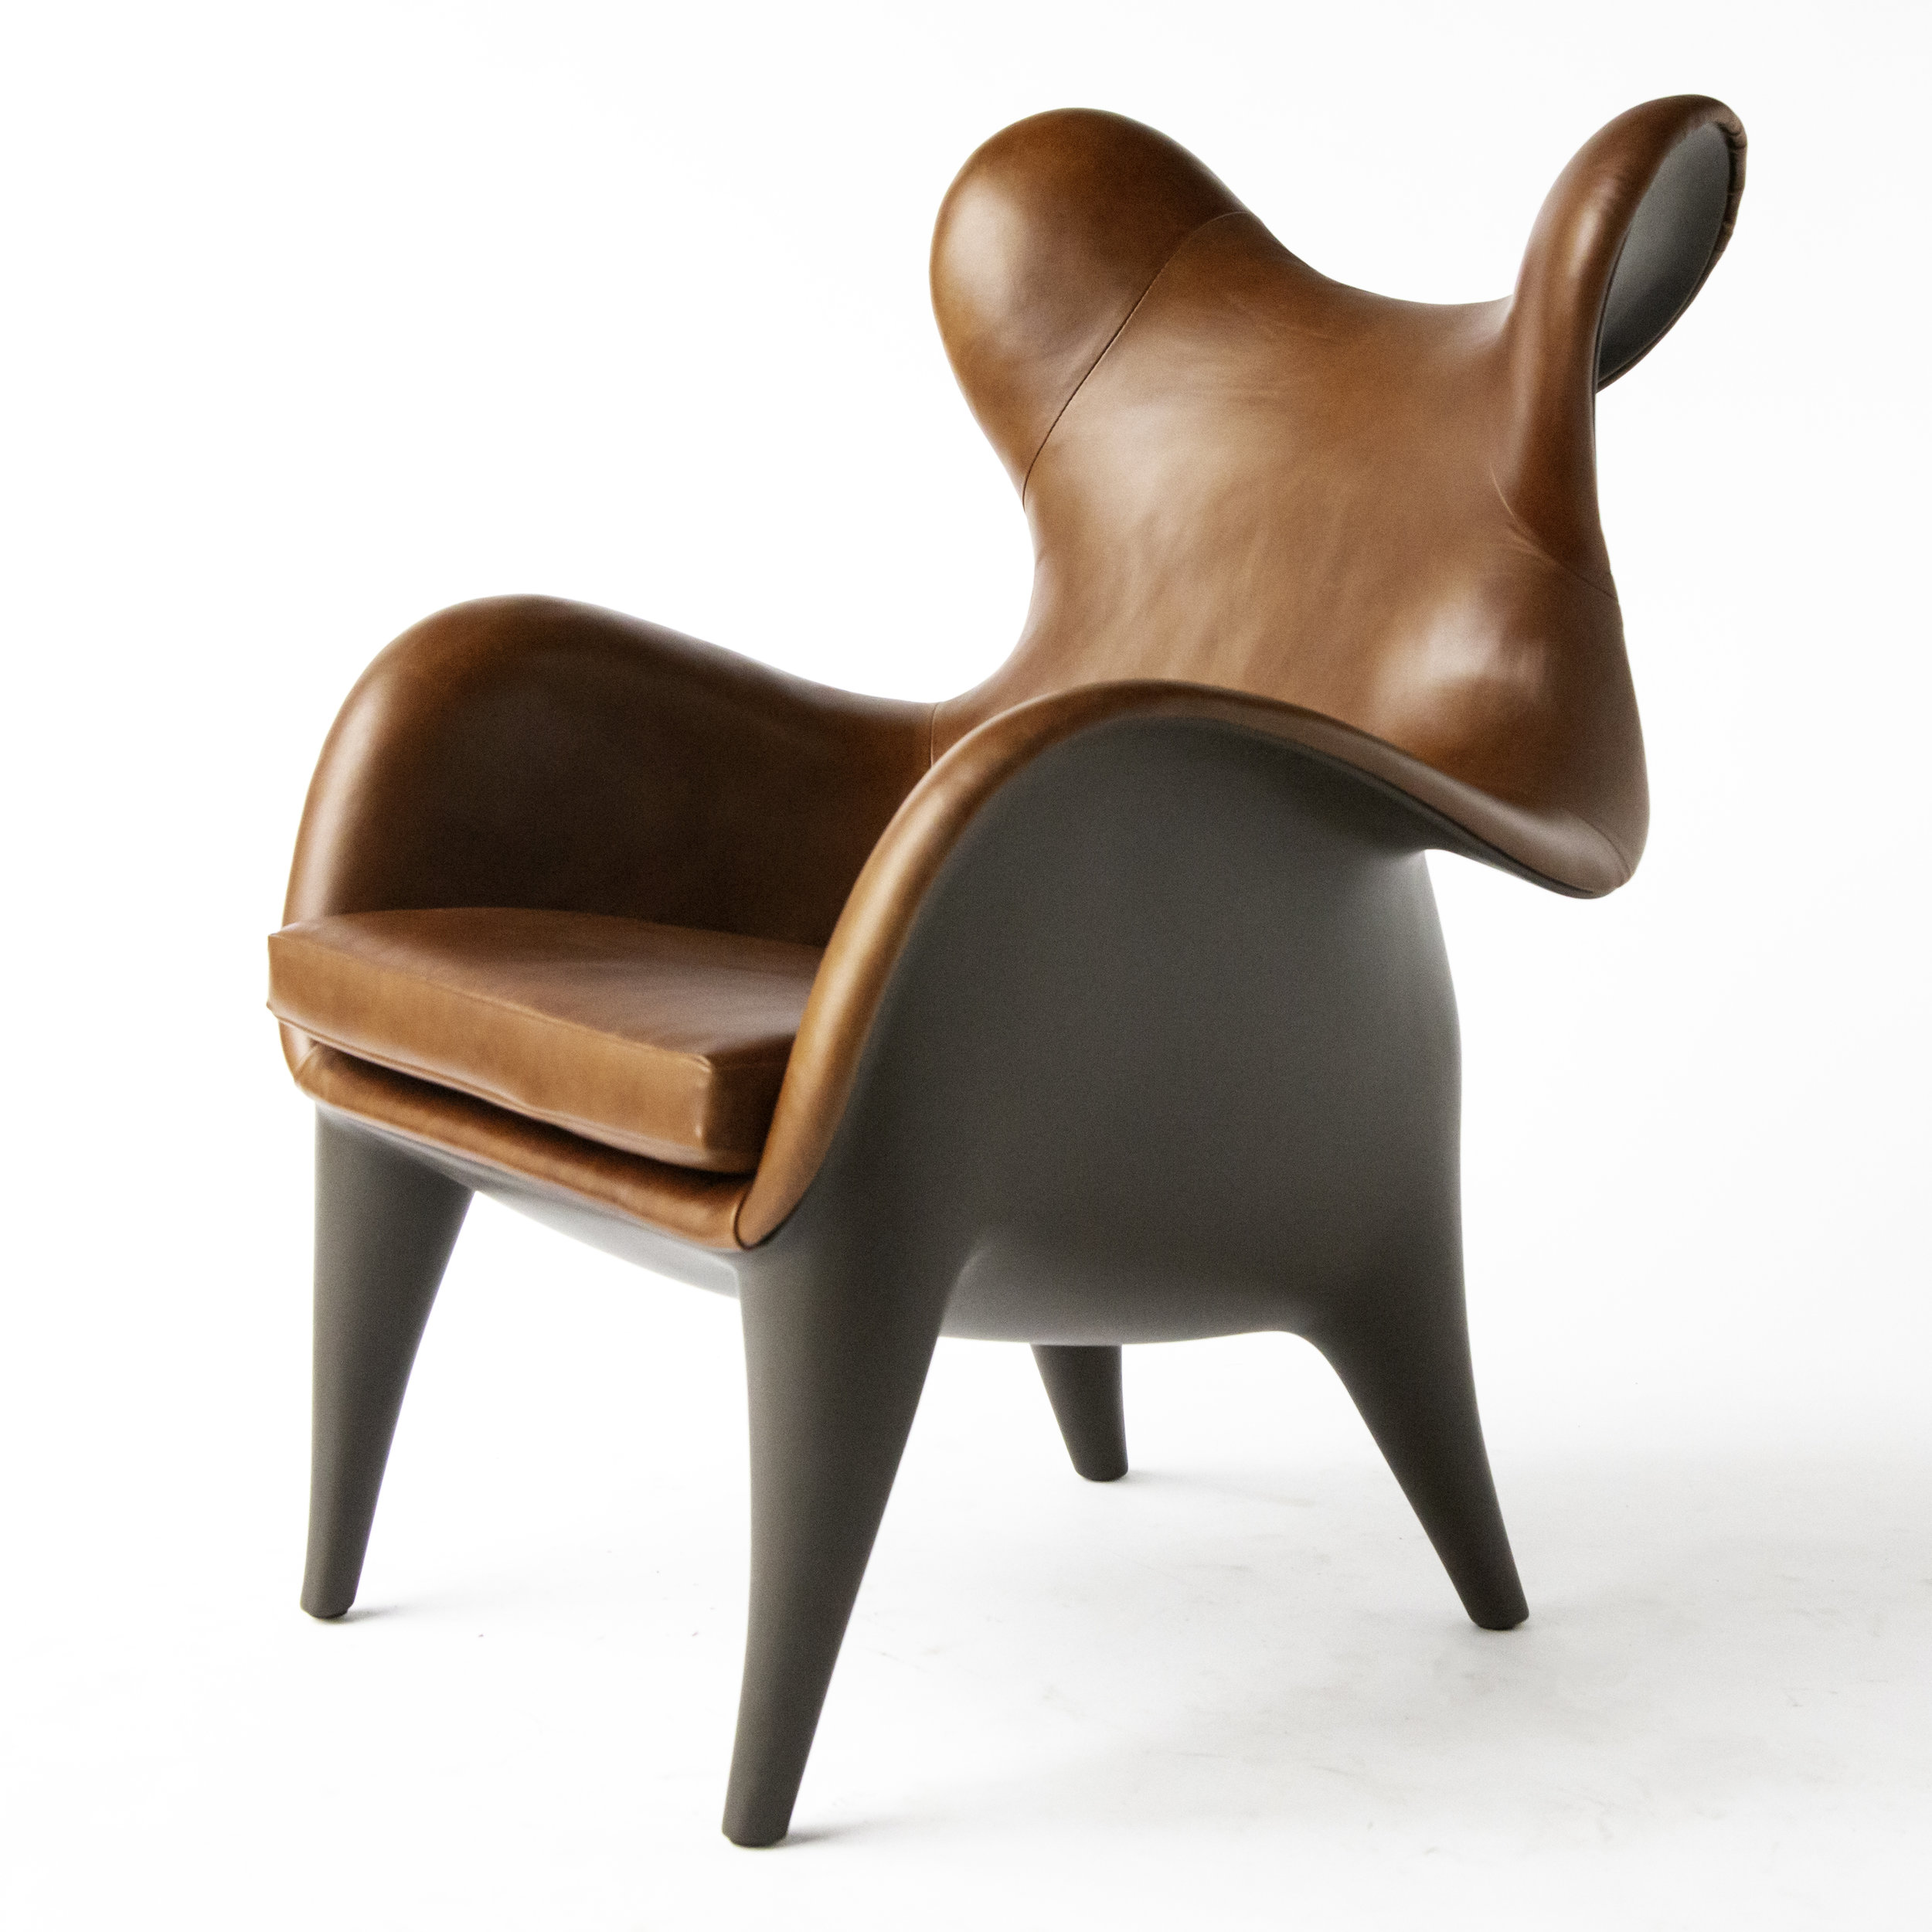 Johnny Chair